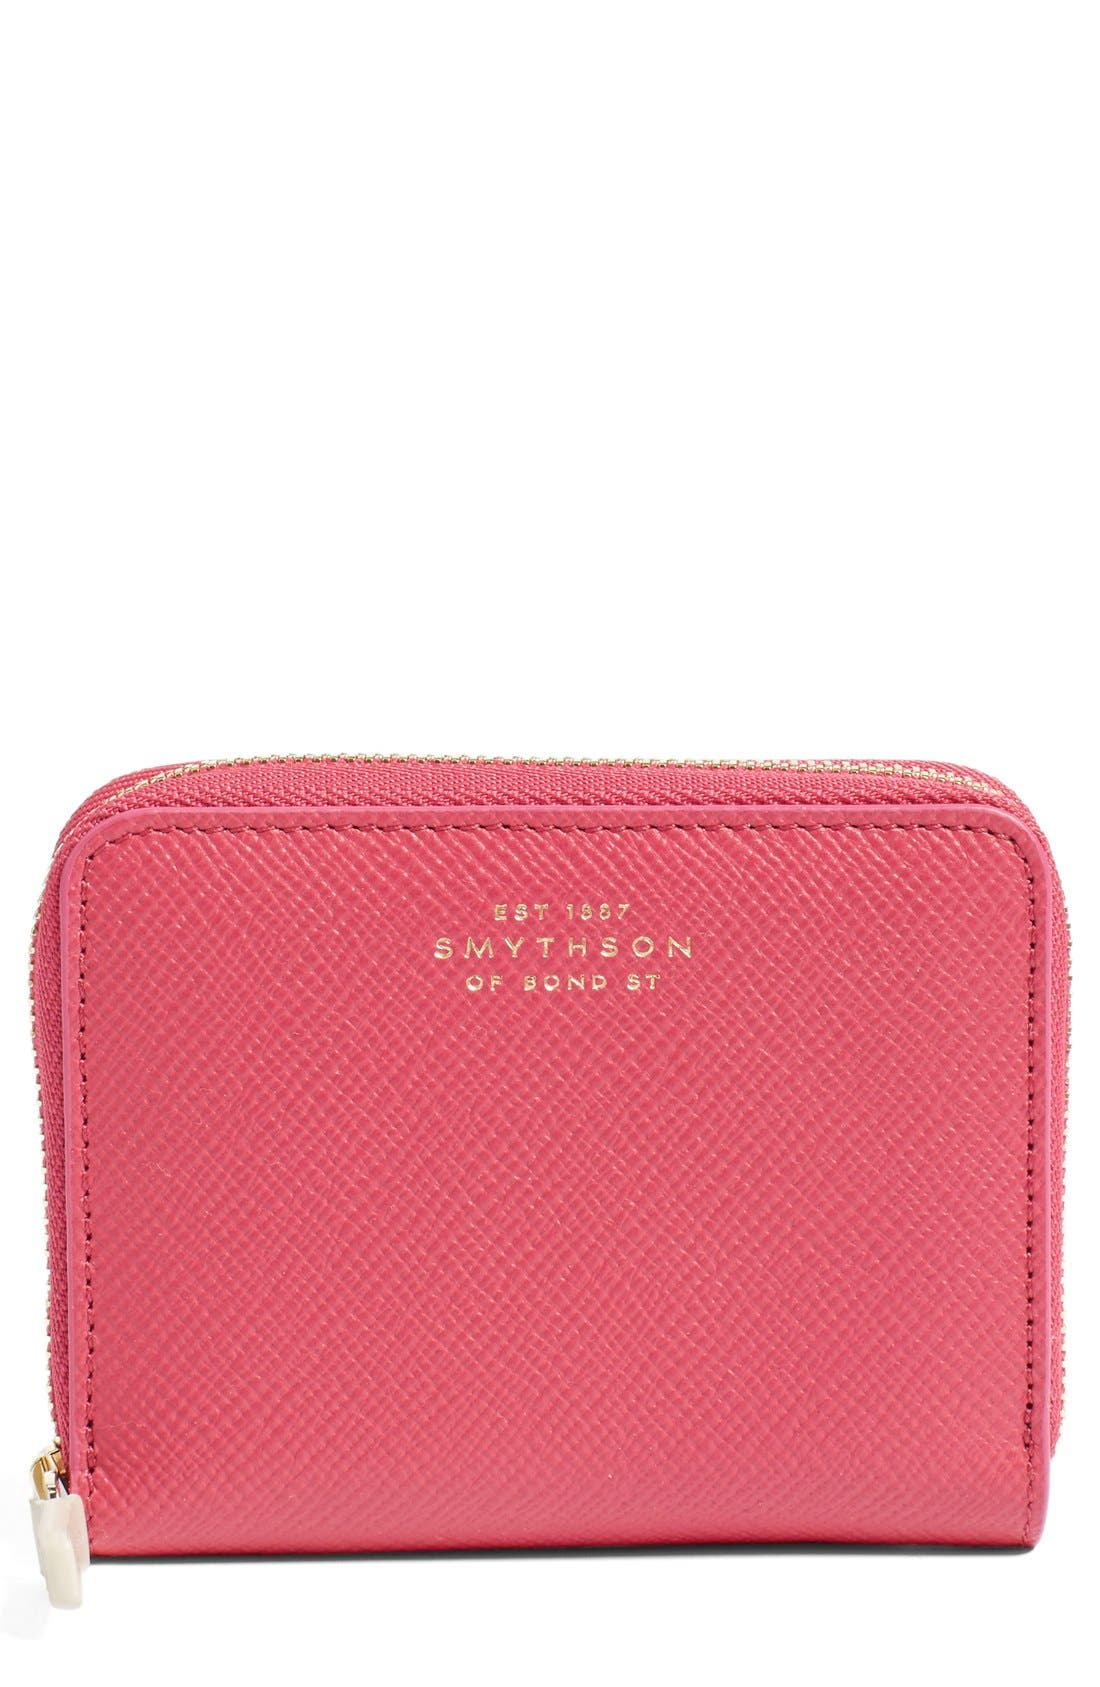 Smythson 'Panama' Leather Coin Case